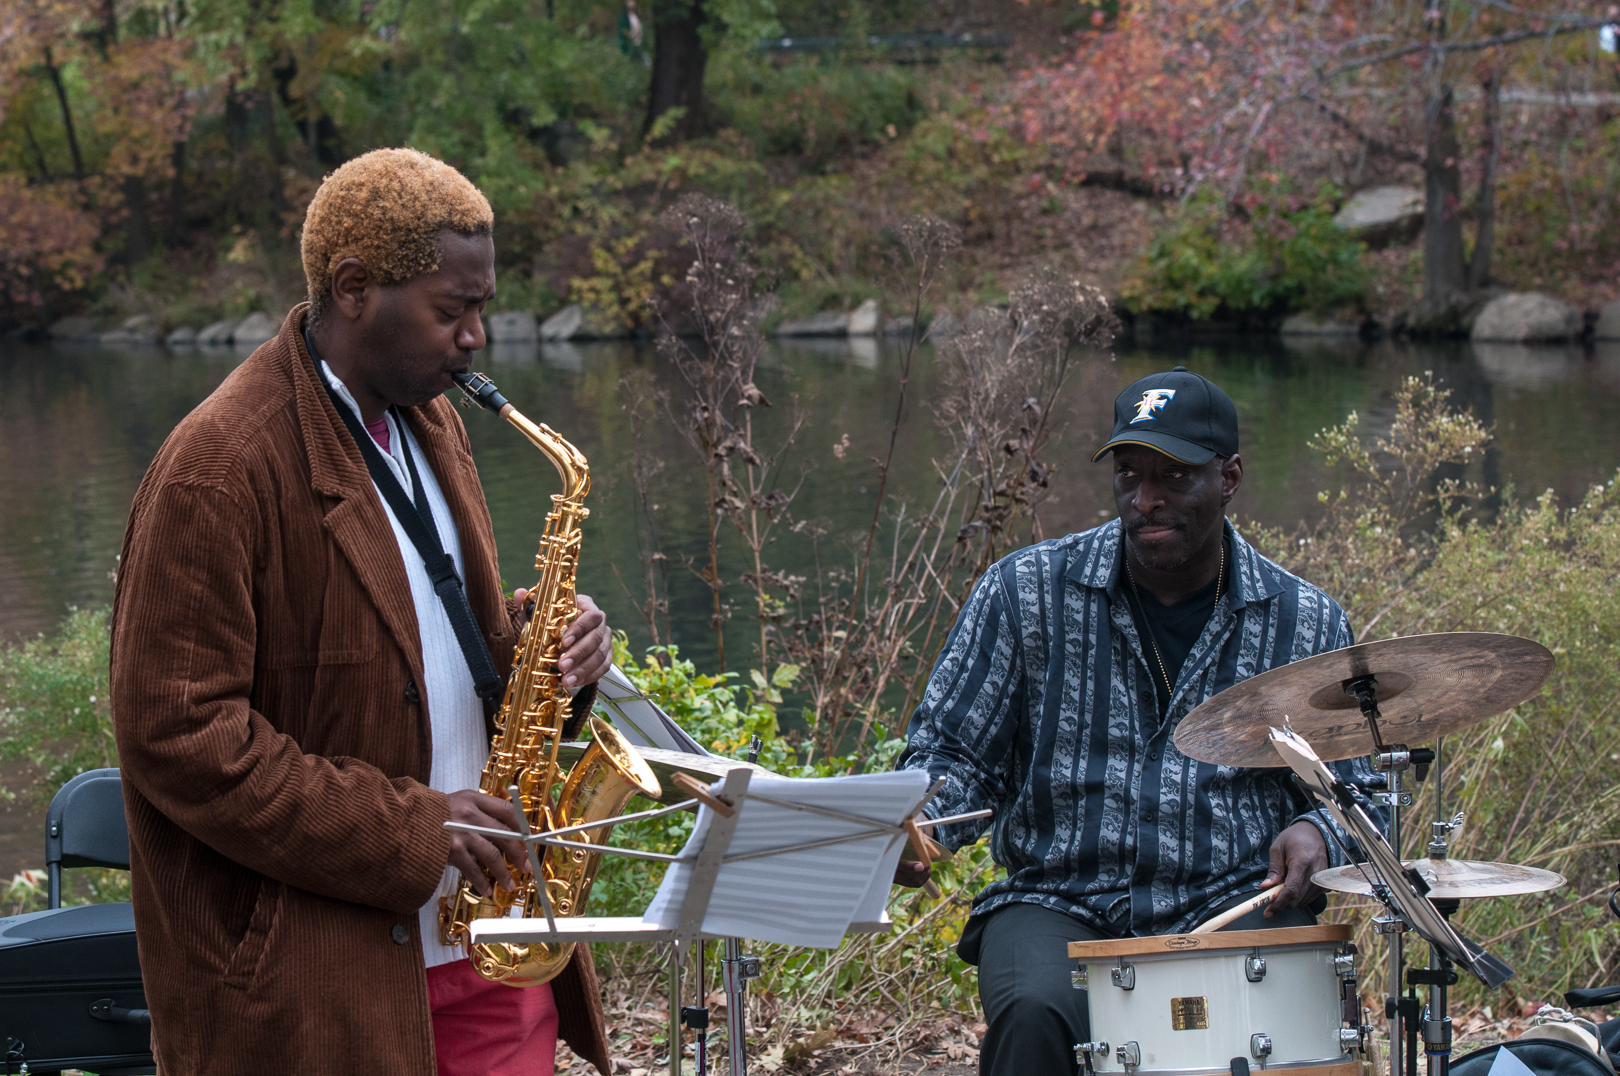 Yosvanny Terry and Willard Dyson at Jazz and Colors in Central Park